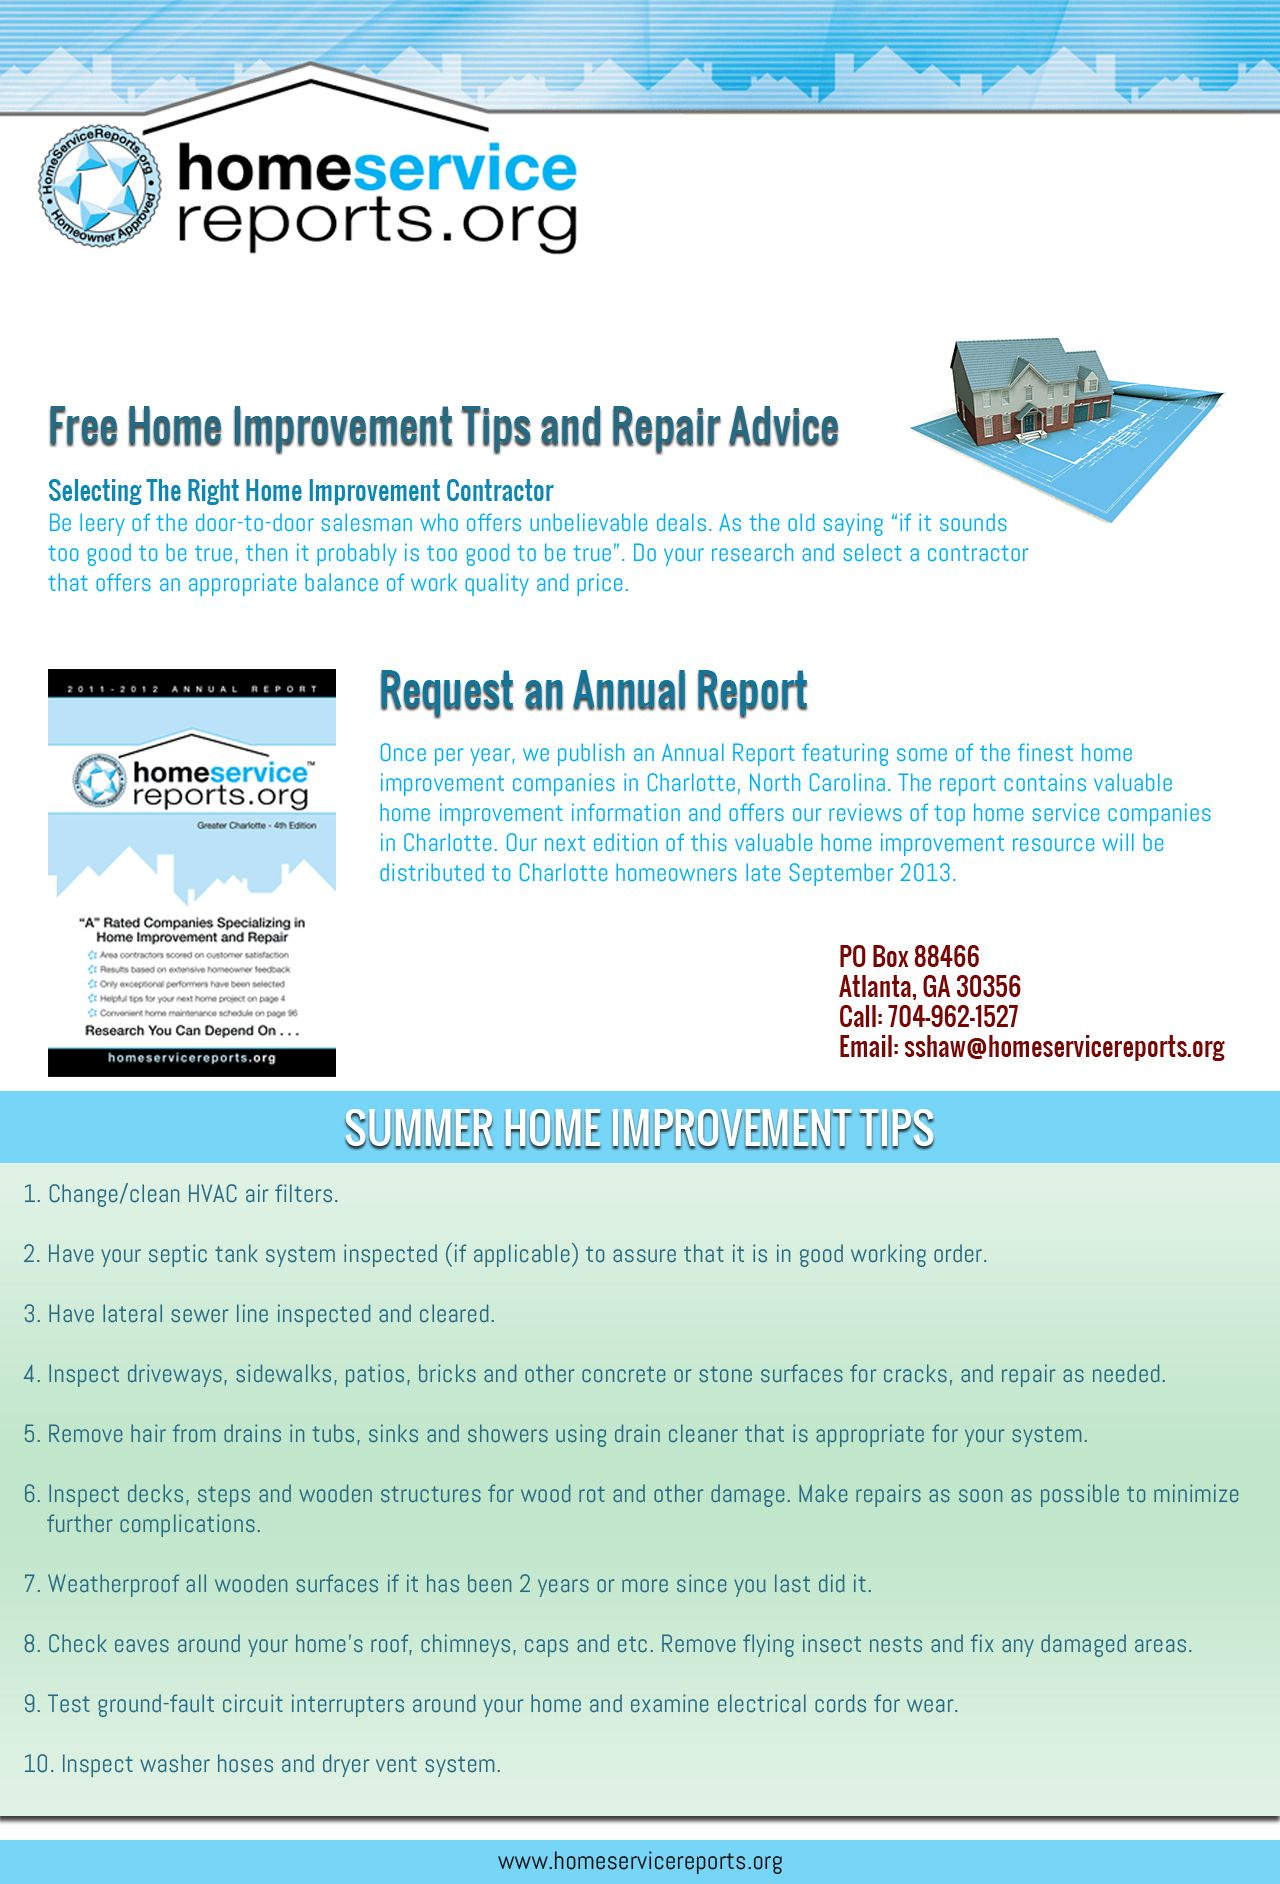 http://www.homeservicereports.org | HomeServiceReports.org's founders have over 60 years of combined history with the nation's leading free consumer directory, website and direct mail companies. With extensive experience in consumer product design and distribution, they have been key leaders of new product.